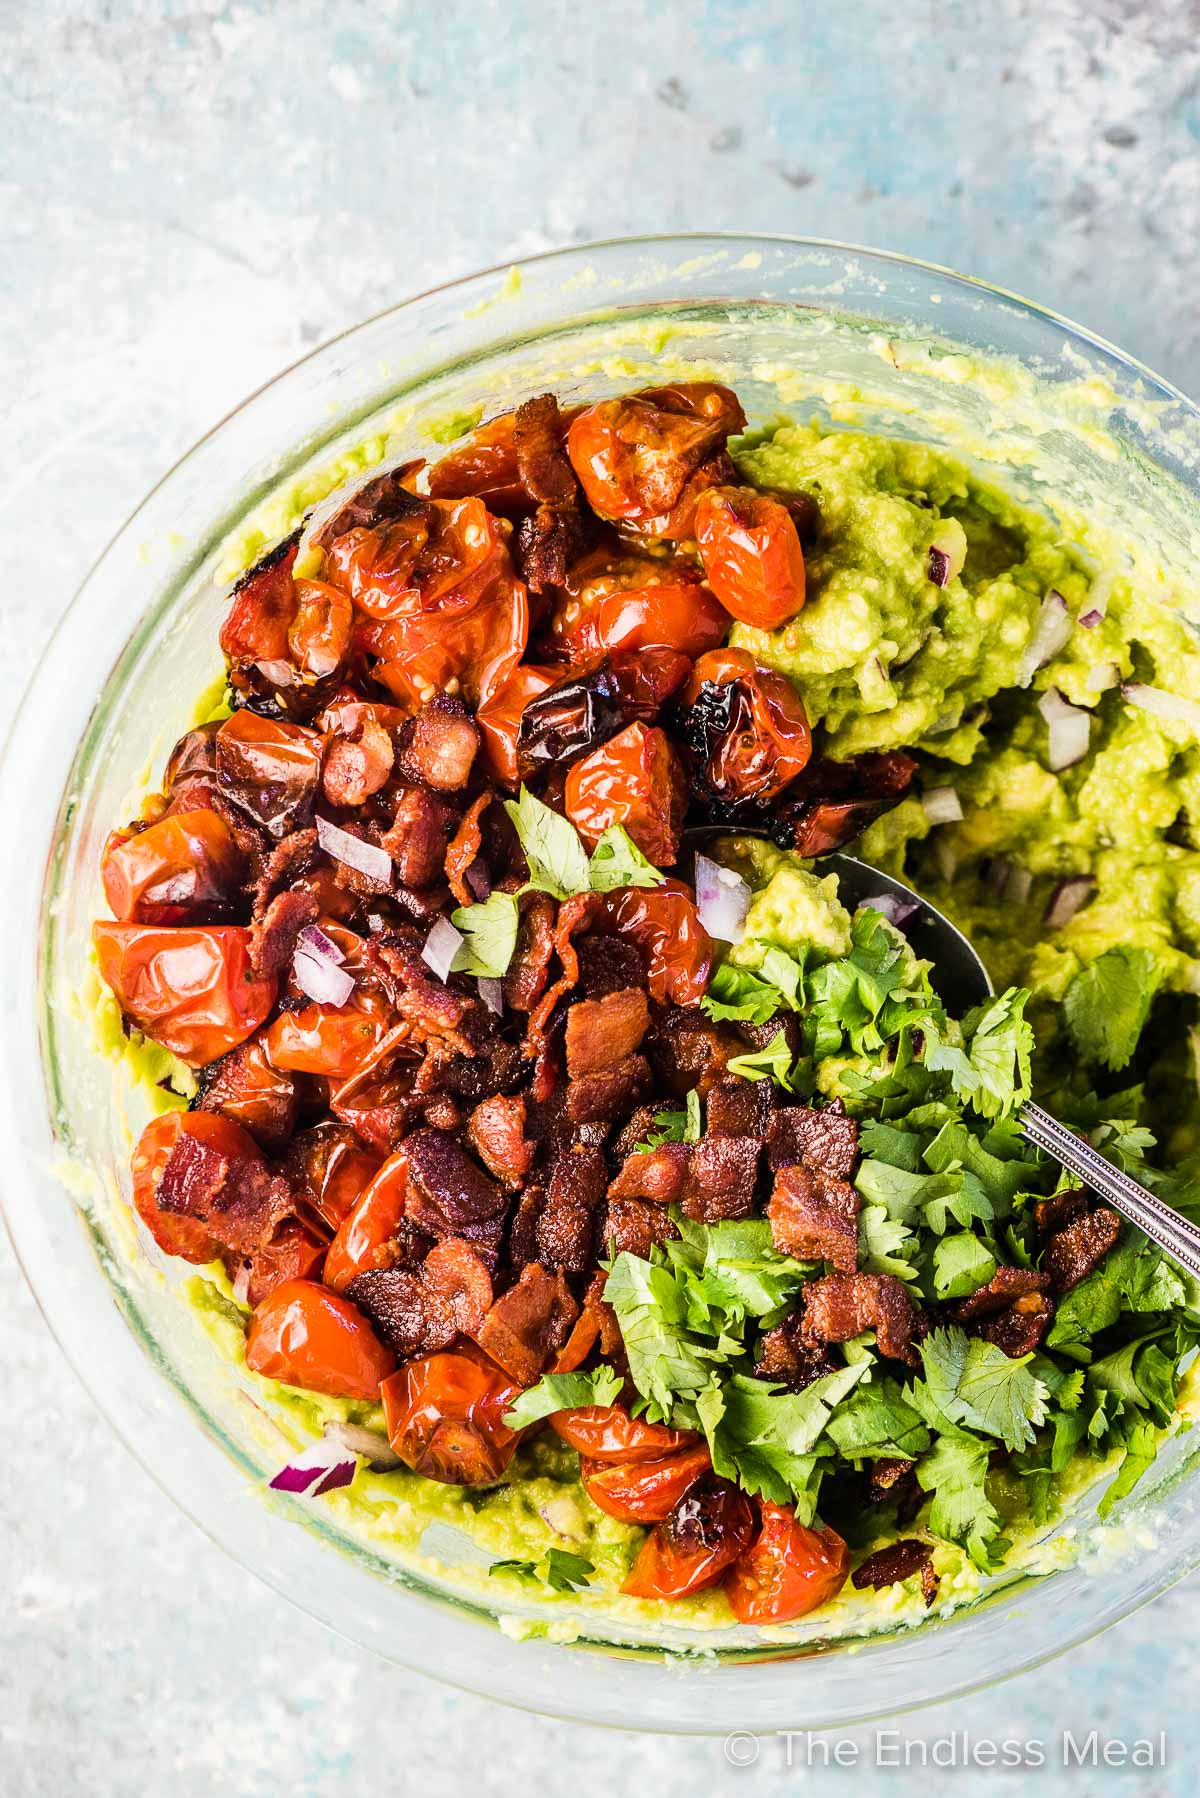 A mixing bowl with mashed avocados, roasted tomatoes, and crispy bacon.